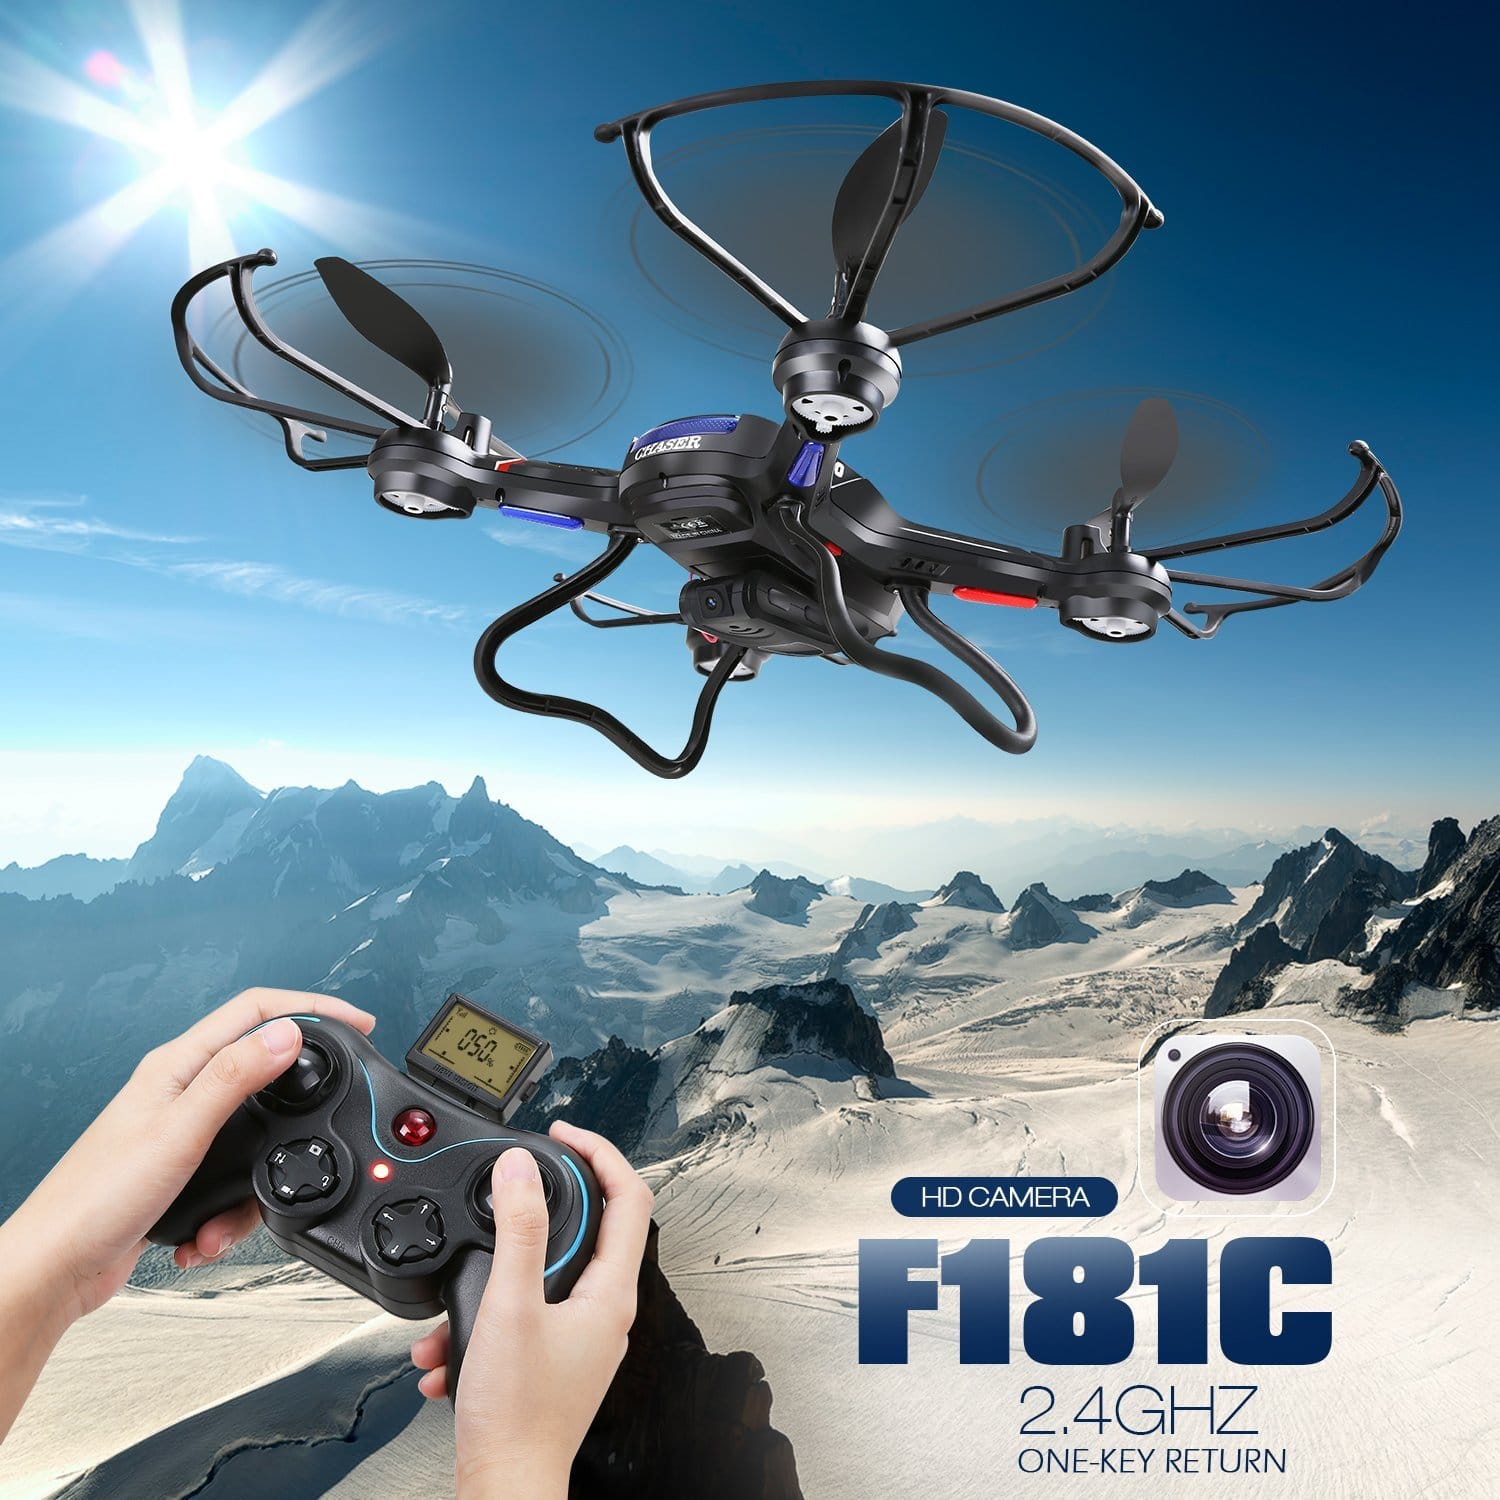 F181C RC Quadcopter Drone with HD Camera RTF 4 Channel 2.4GHz 6-Gyro for $49.99 AC + Free Shipping